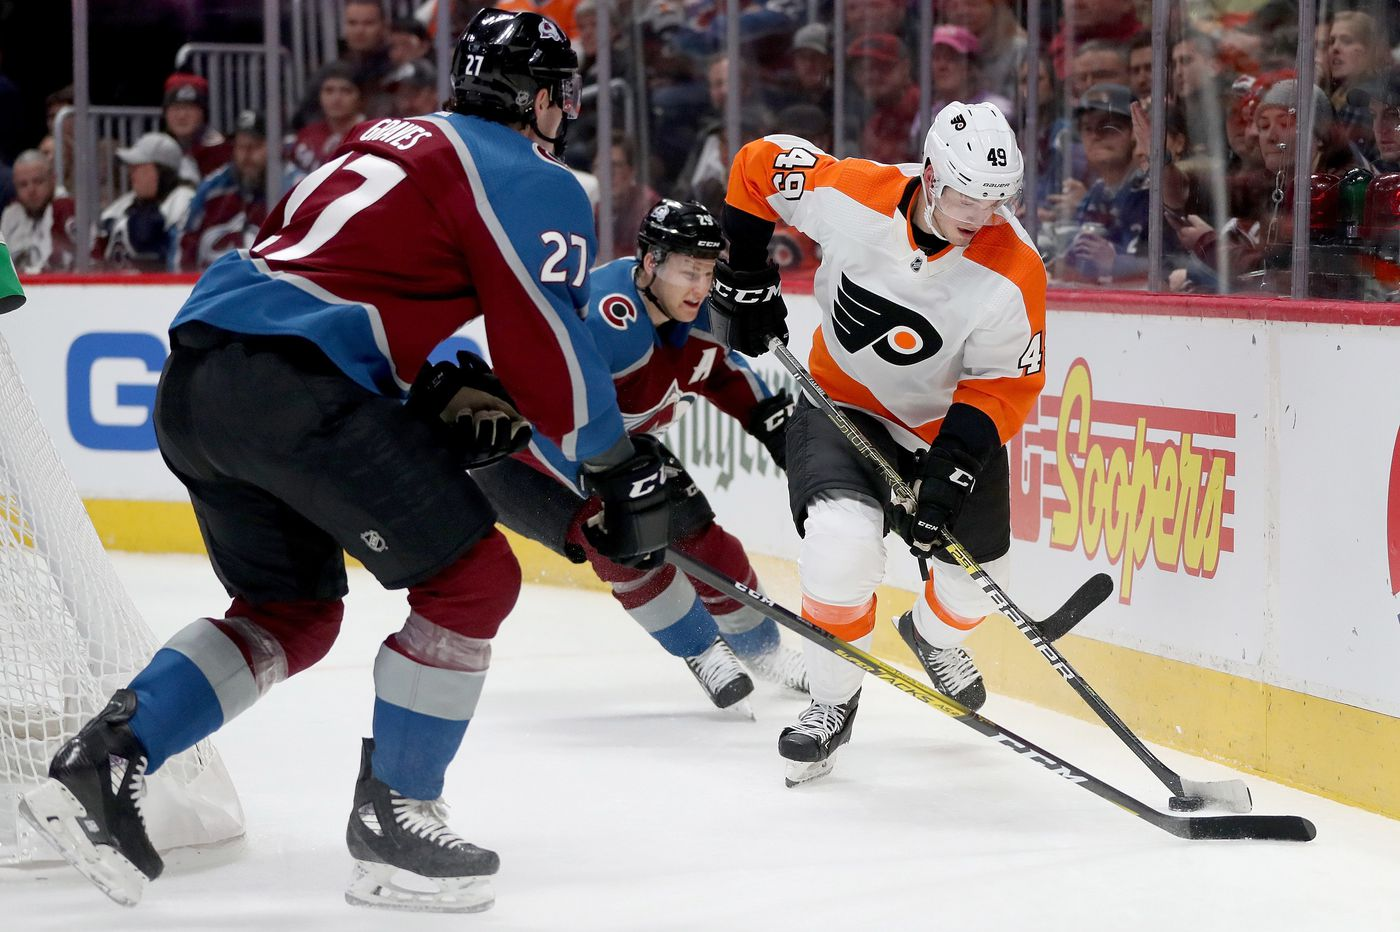 Shorthanded Flyers fall to Colorado, 3-1; loss is only 2nd in 8 games